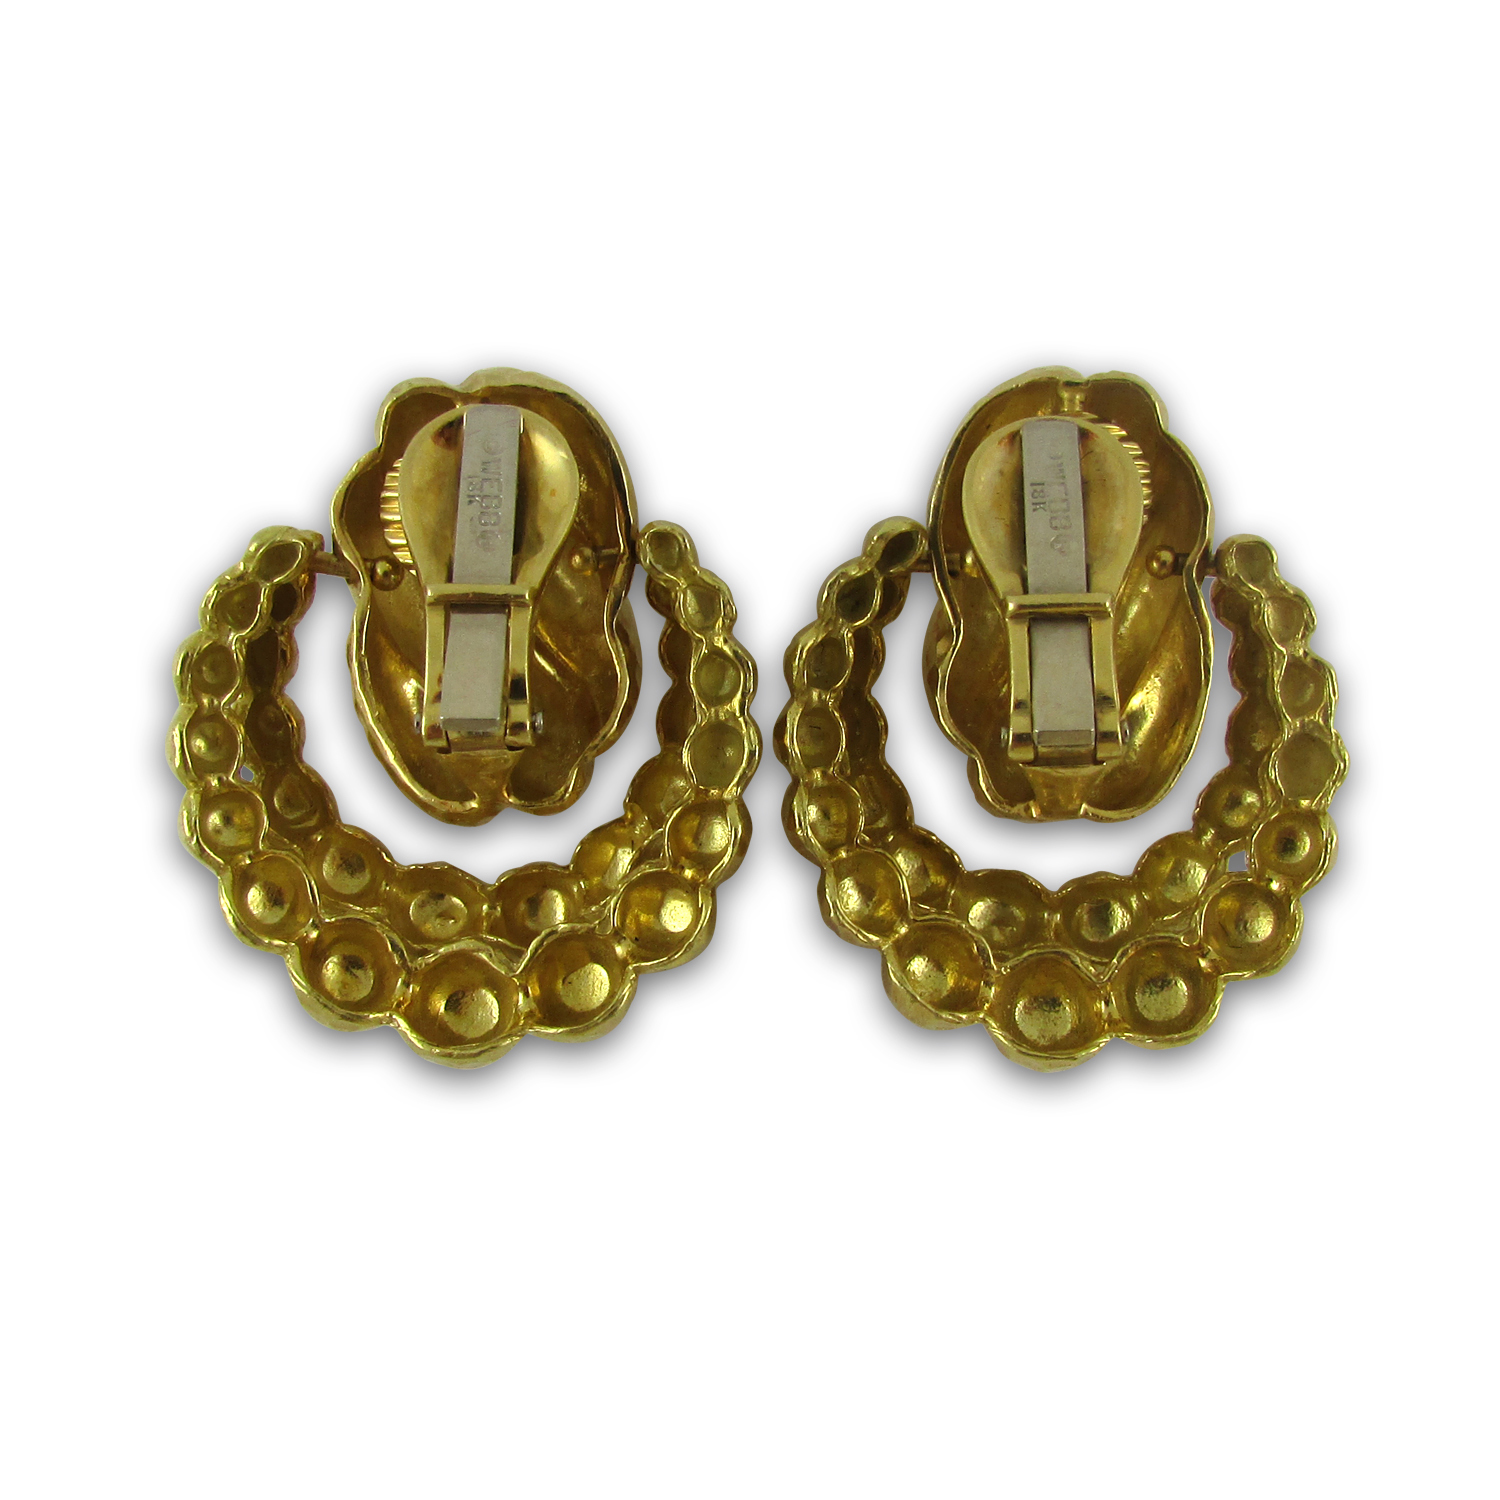 18KT yellow gold hammered door knocker earrings. Signed WEBB.